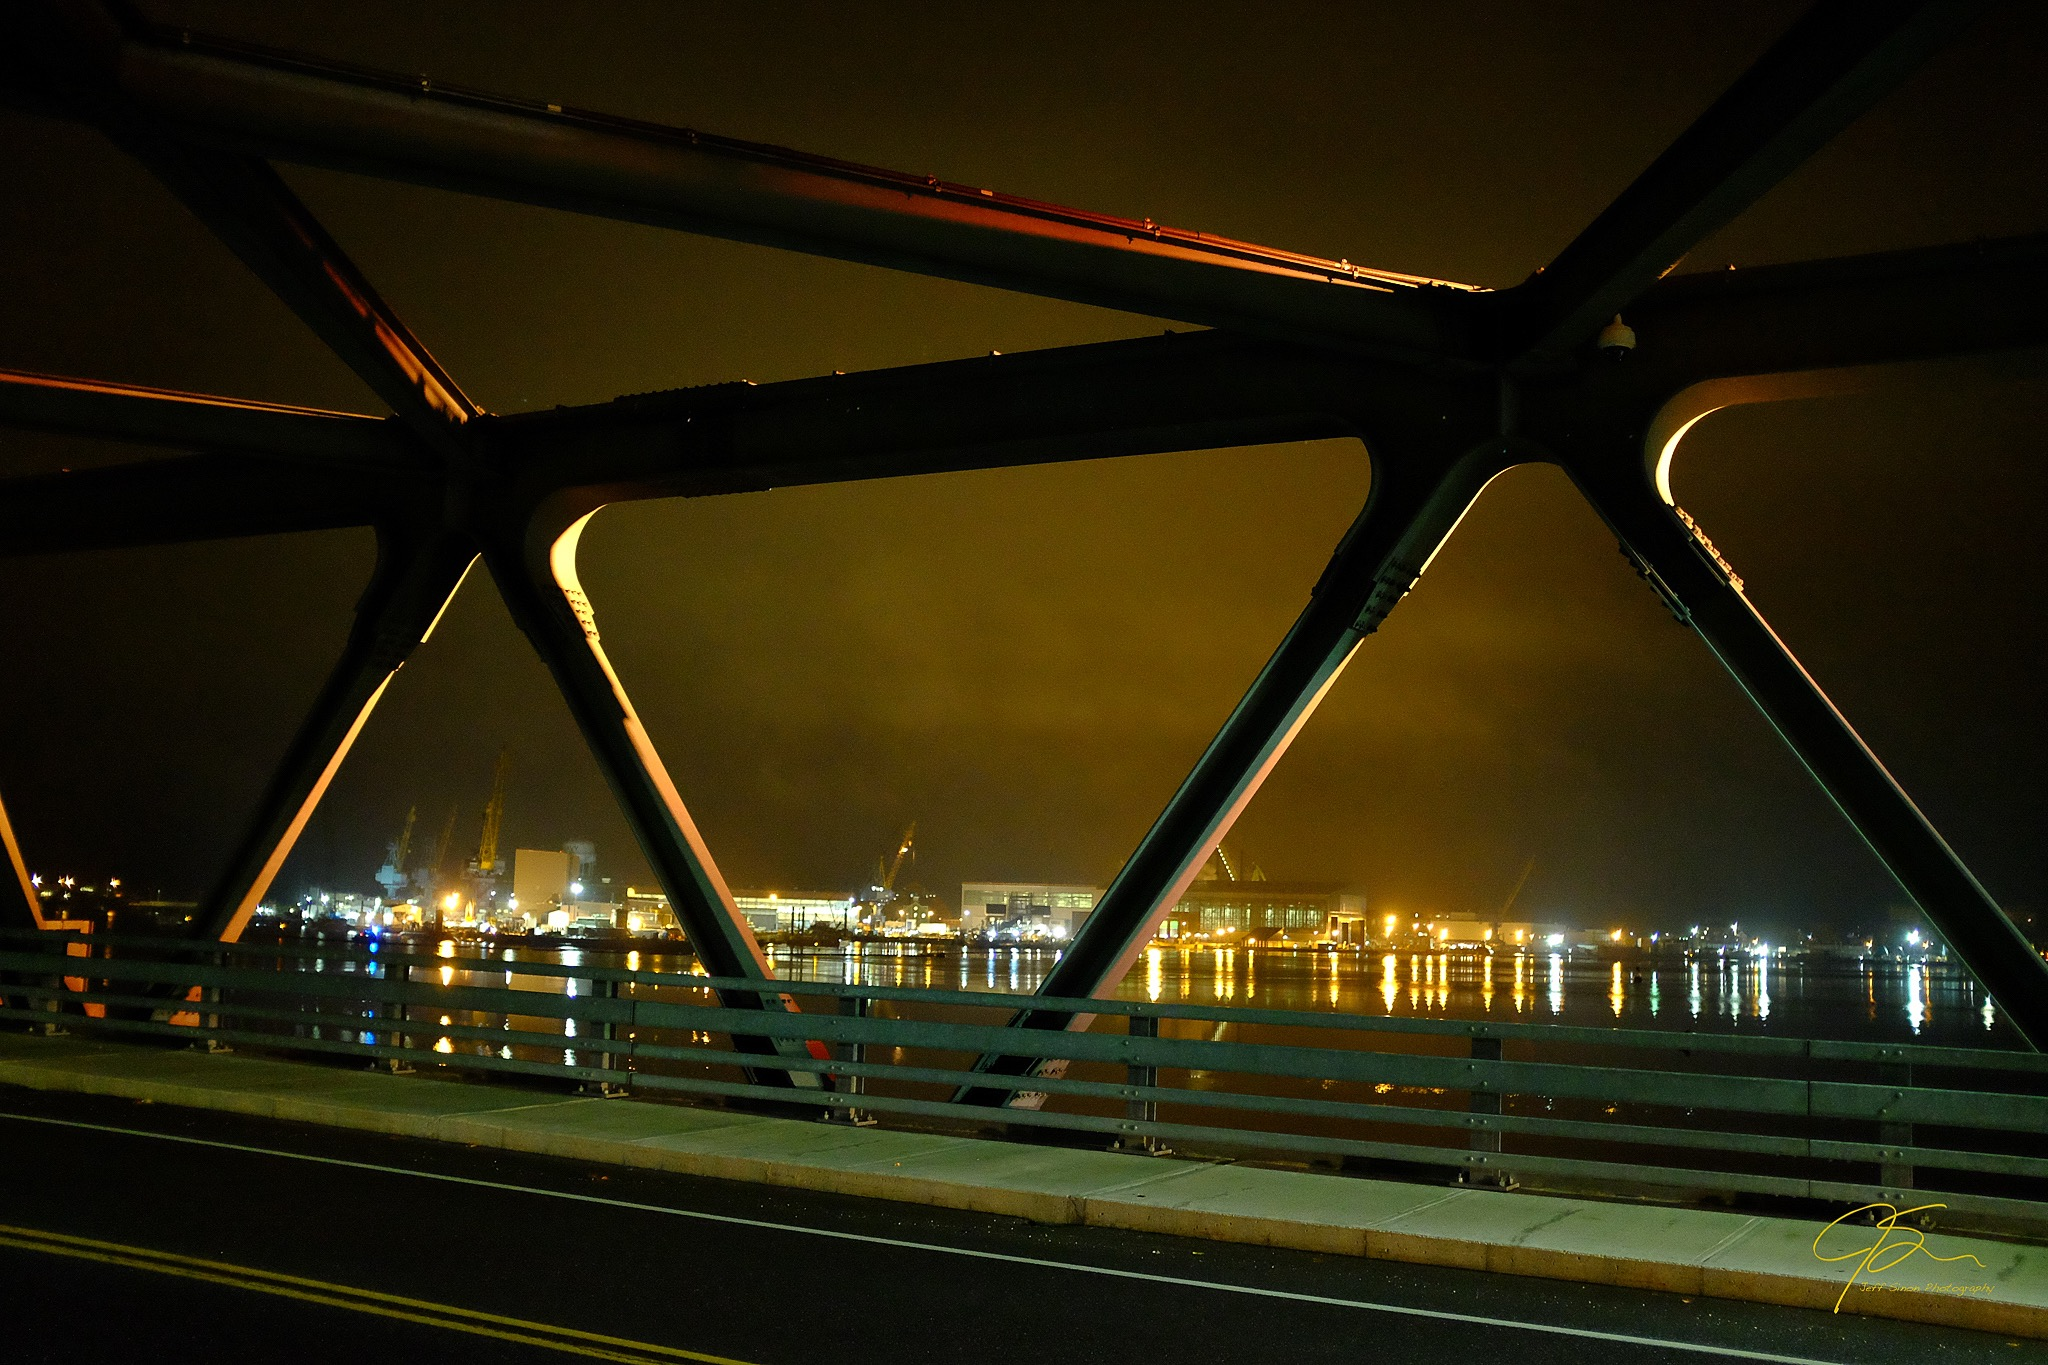 looking through the structure of the memorial bridge towards the portsmouth naval shipyard in Kittery, Maine.